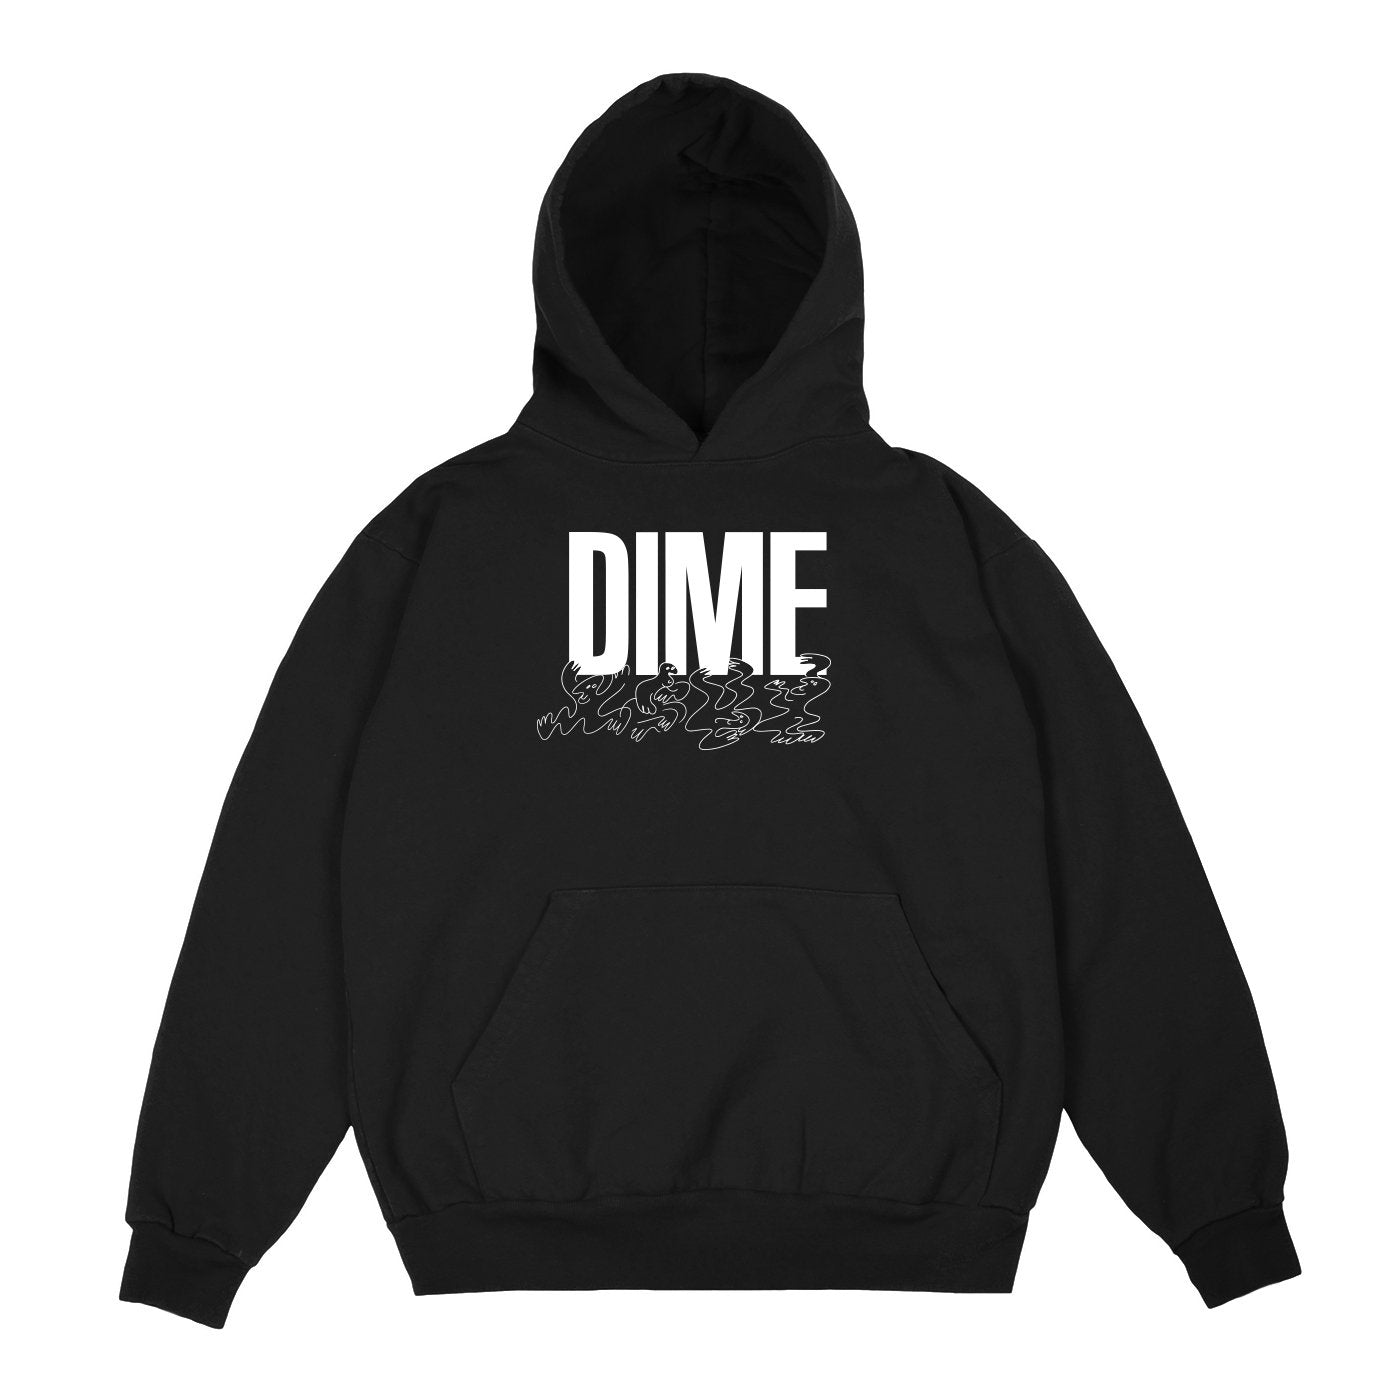 Dime Support Hood Product Photo #1